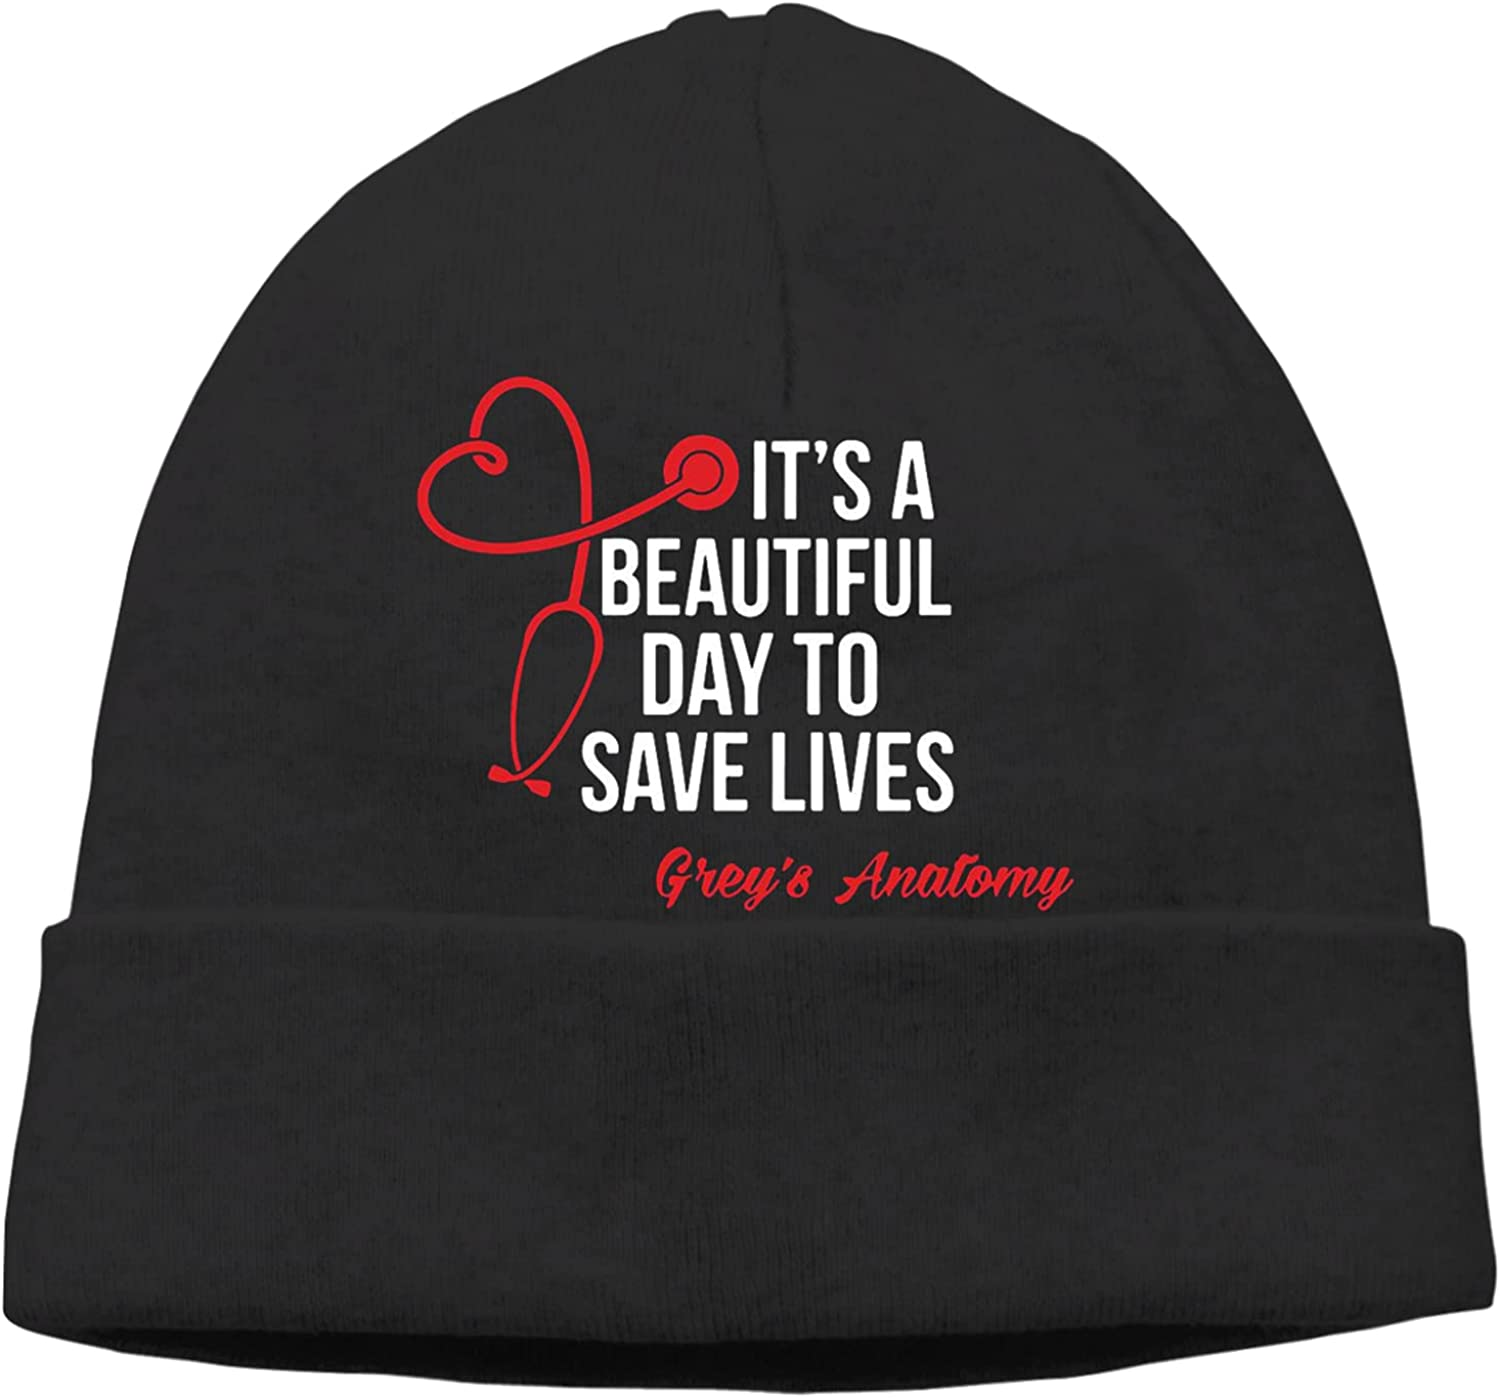 It's A Beautiful Day 2021 to Save Lives1 War Slogan Cap Unisex Beanie Popular products